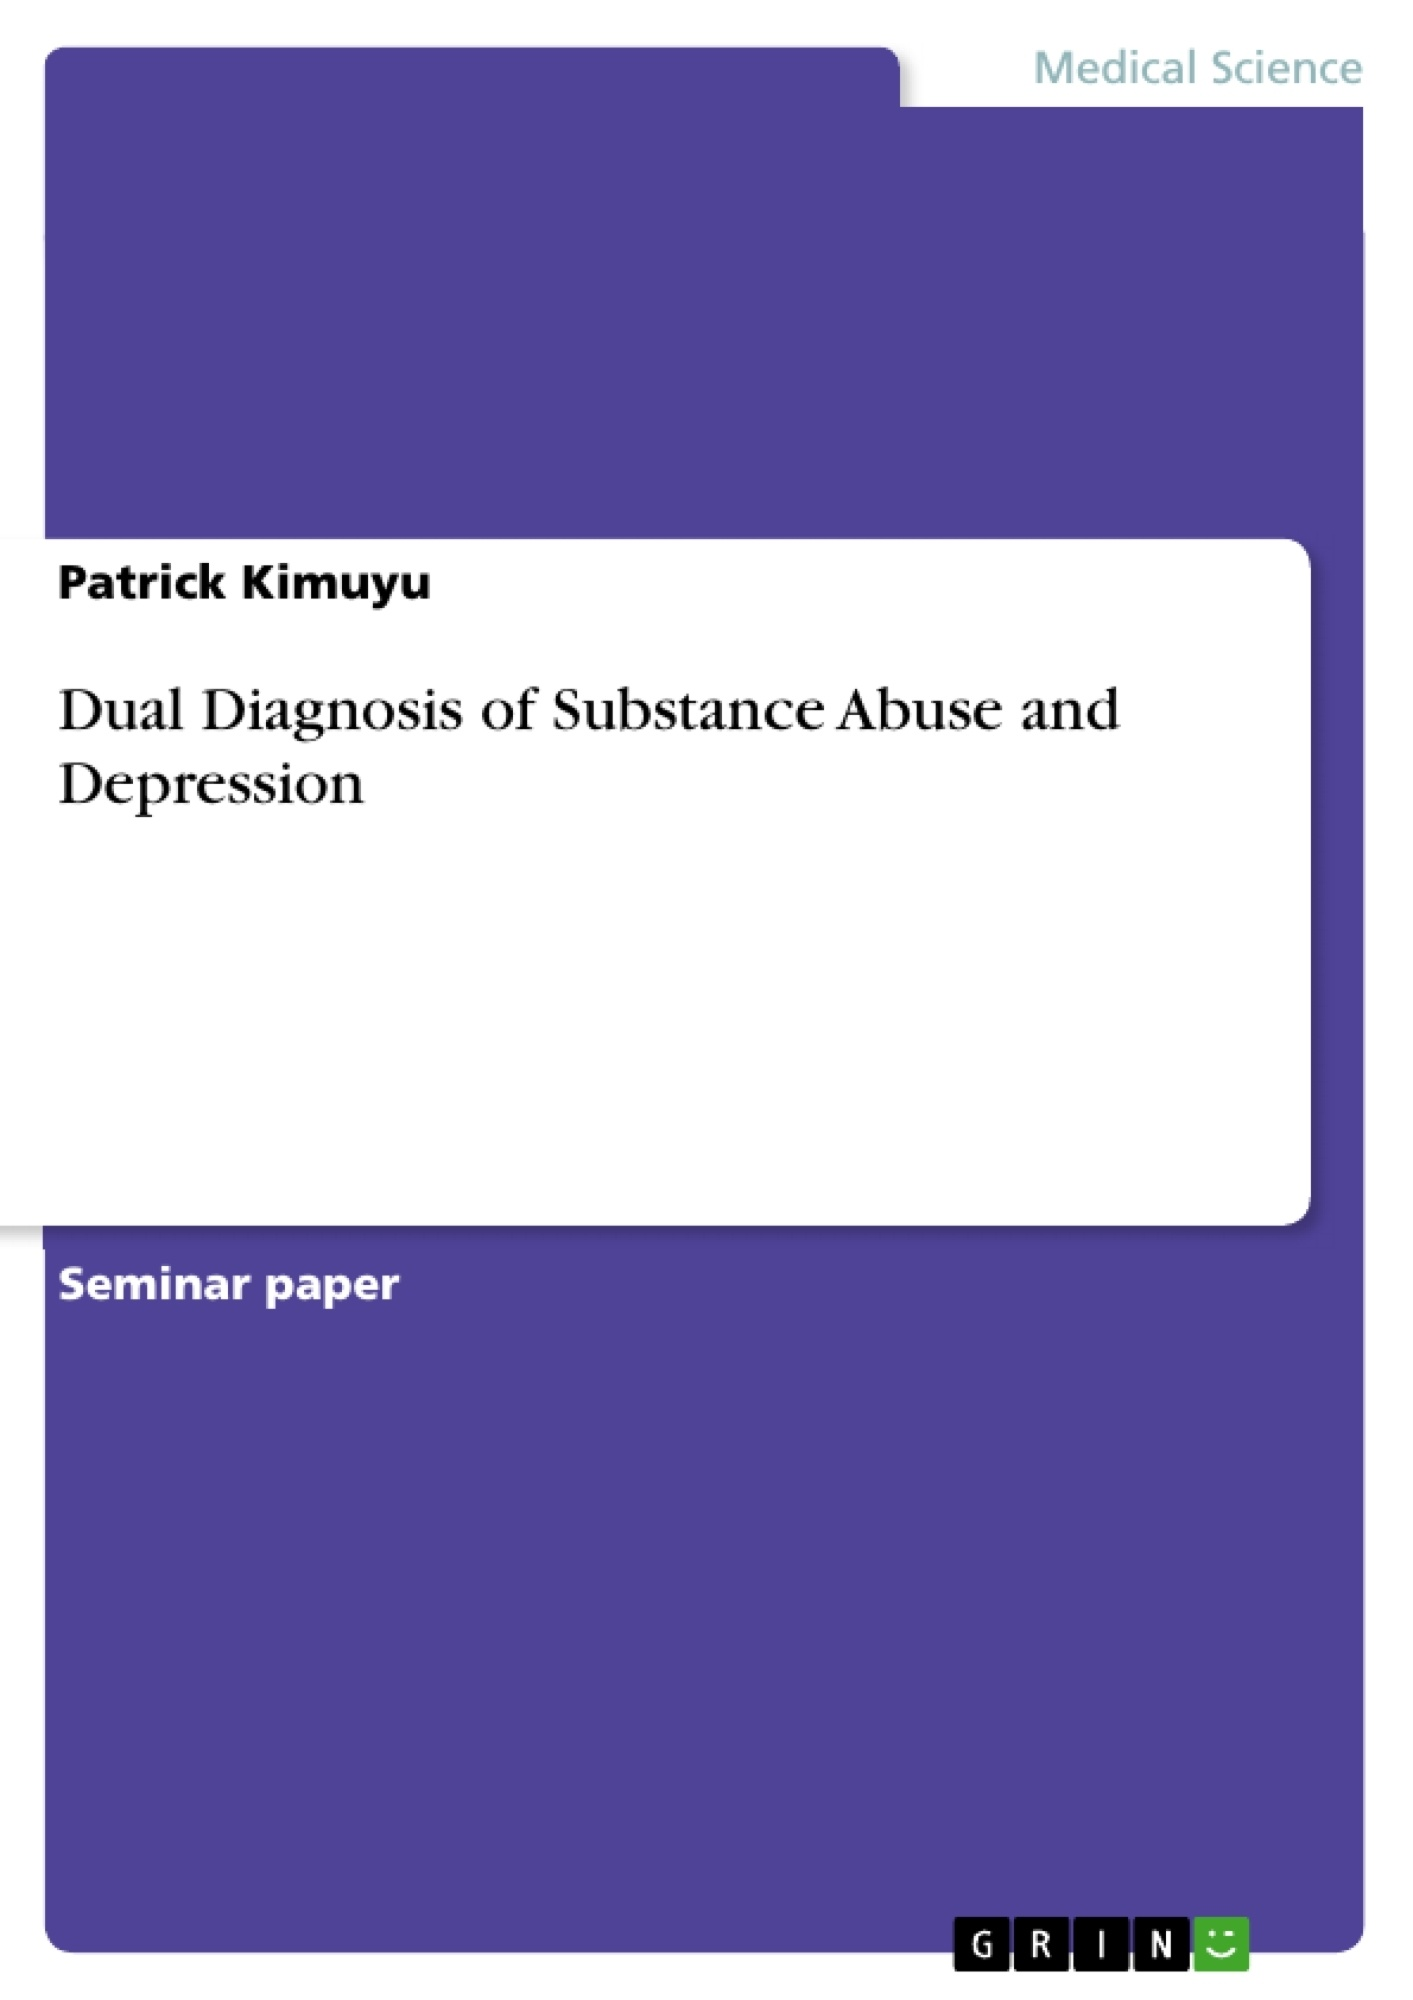 Title: Dual Diagnosis of Substance Abuse and Depression